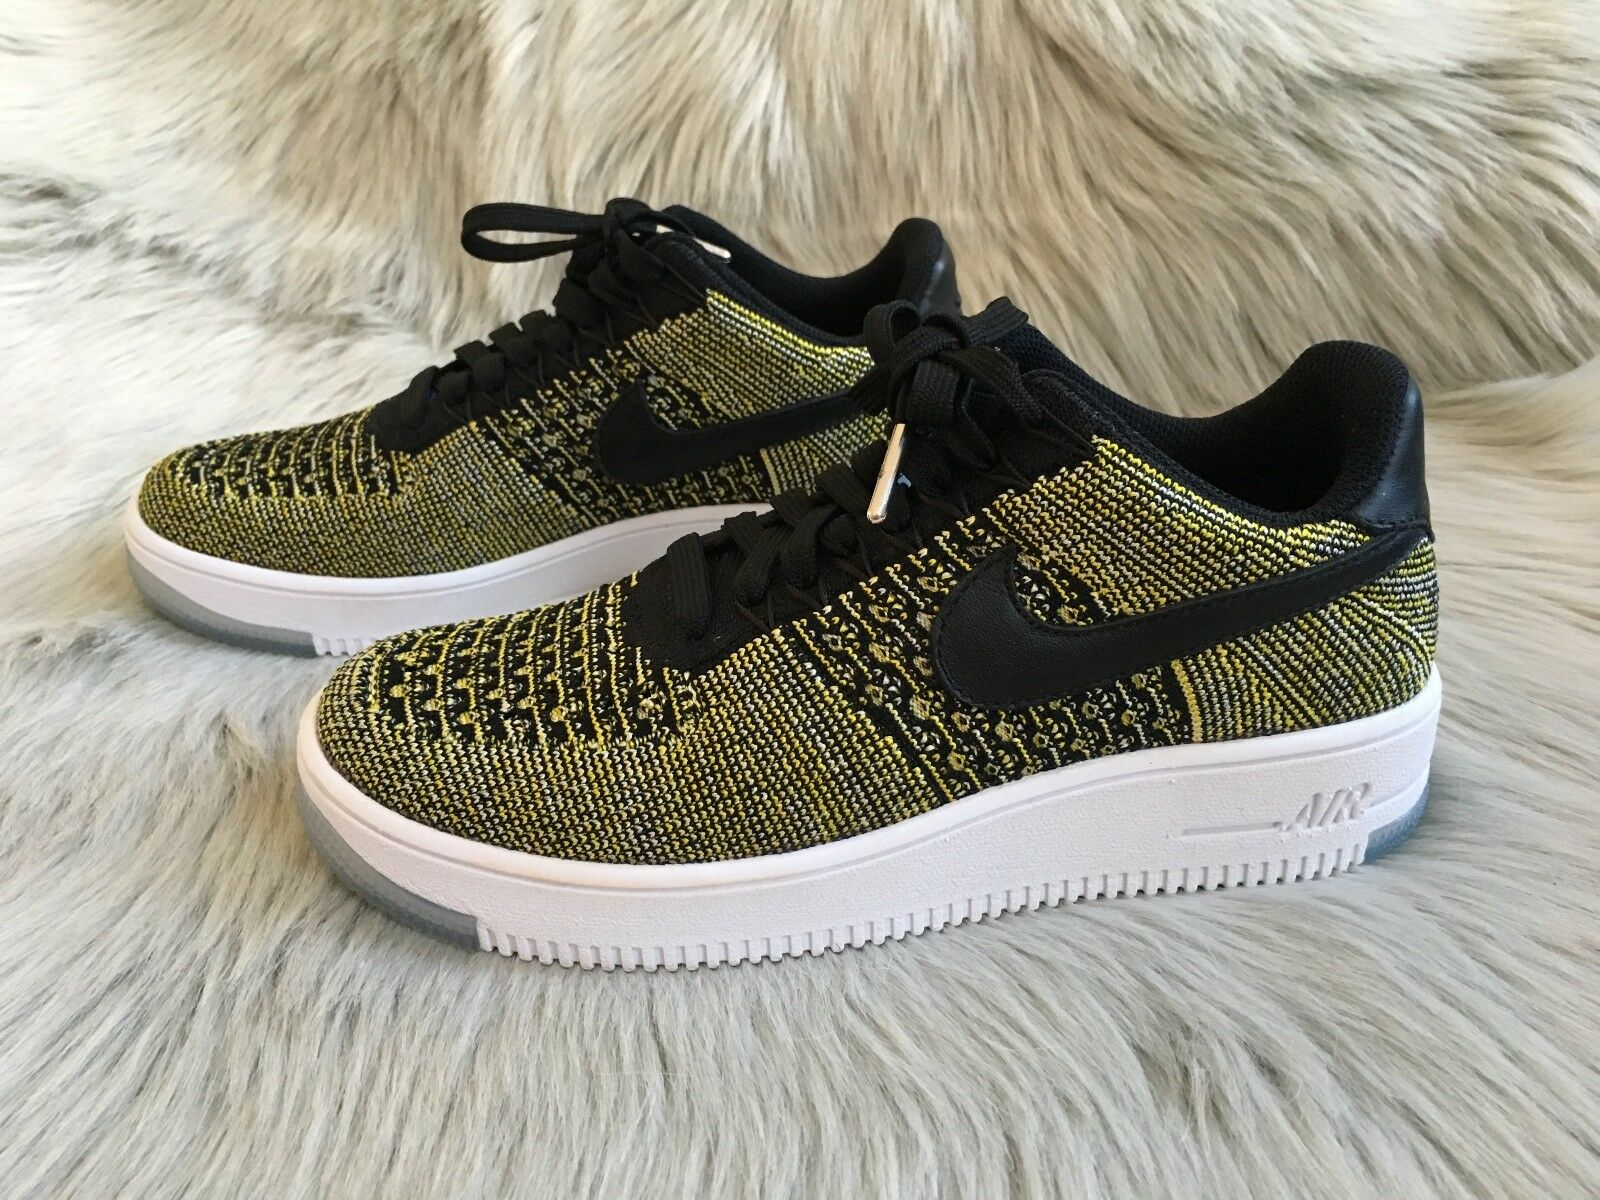 New Nike AF1 Flyknit Low shoes Sneaker (Size 7.5)